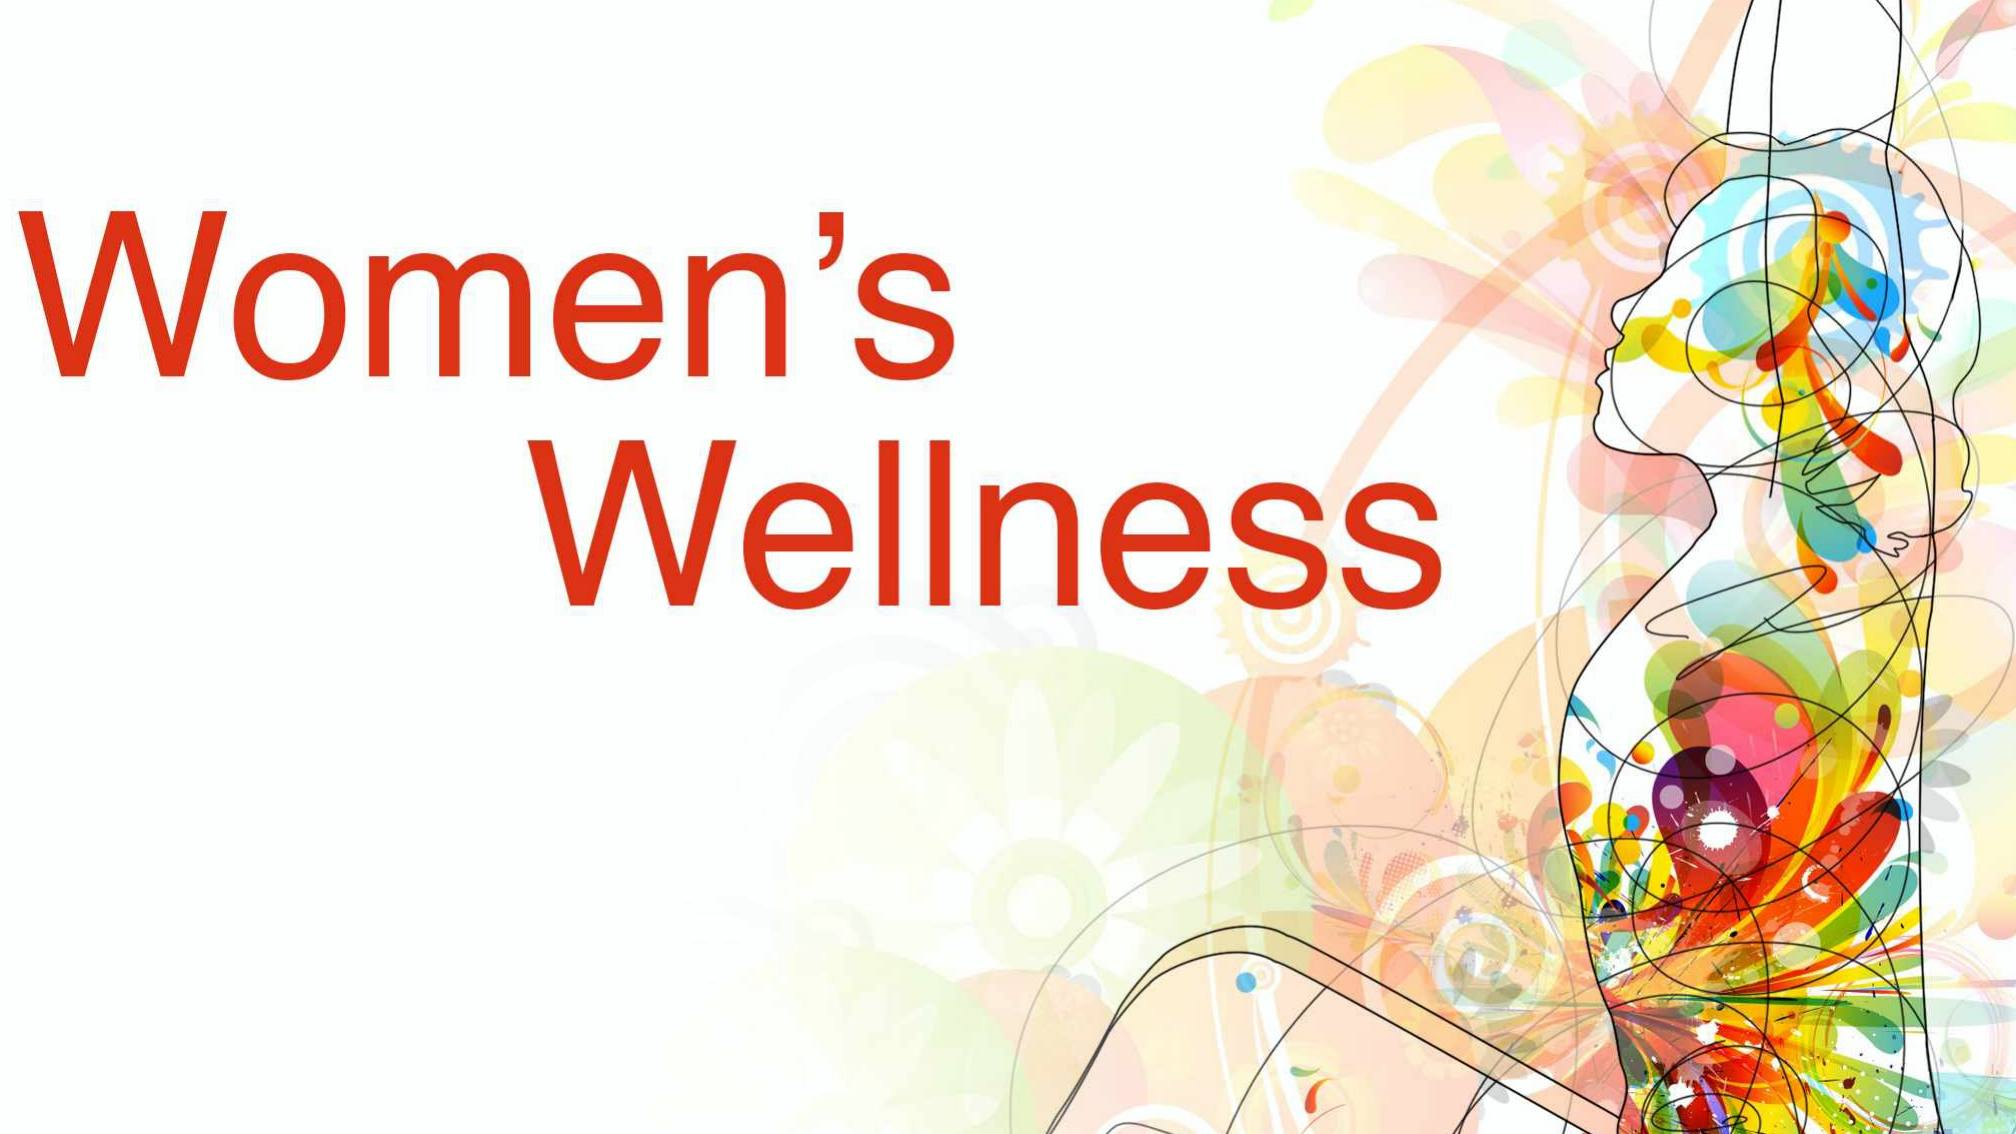 Women's Wellness: Hormone therapy and Alzheimer's disease